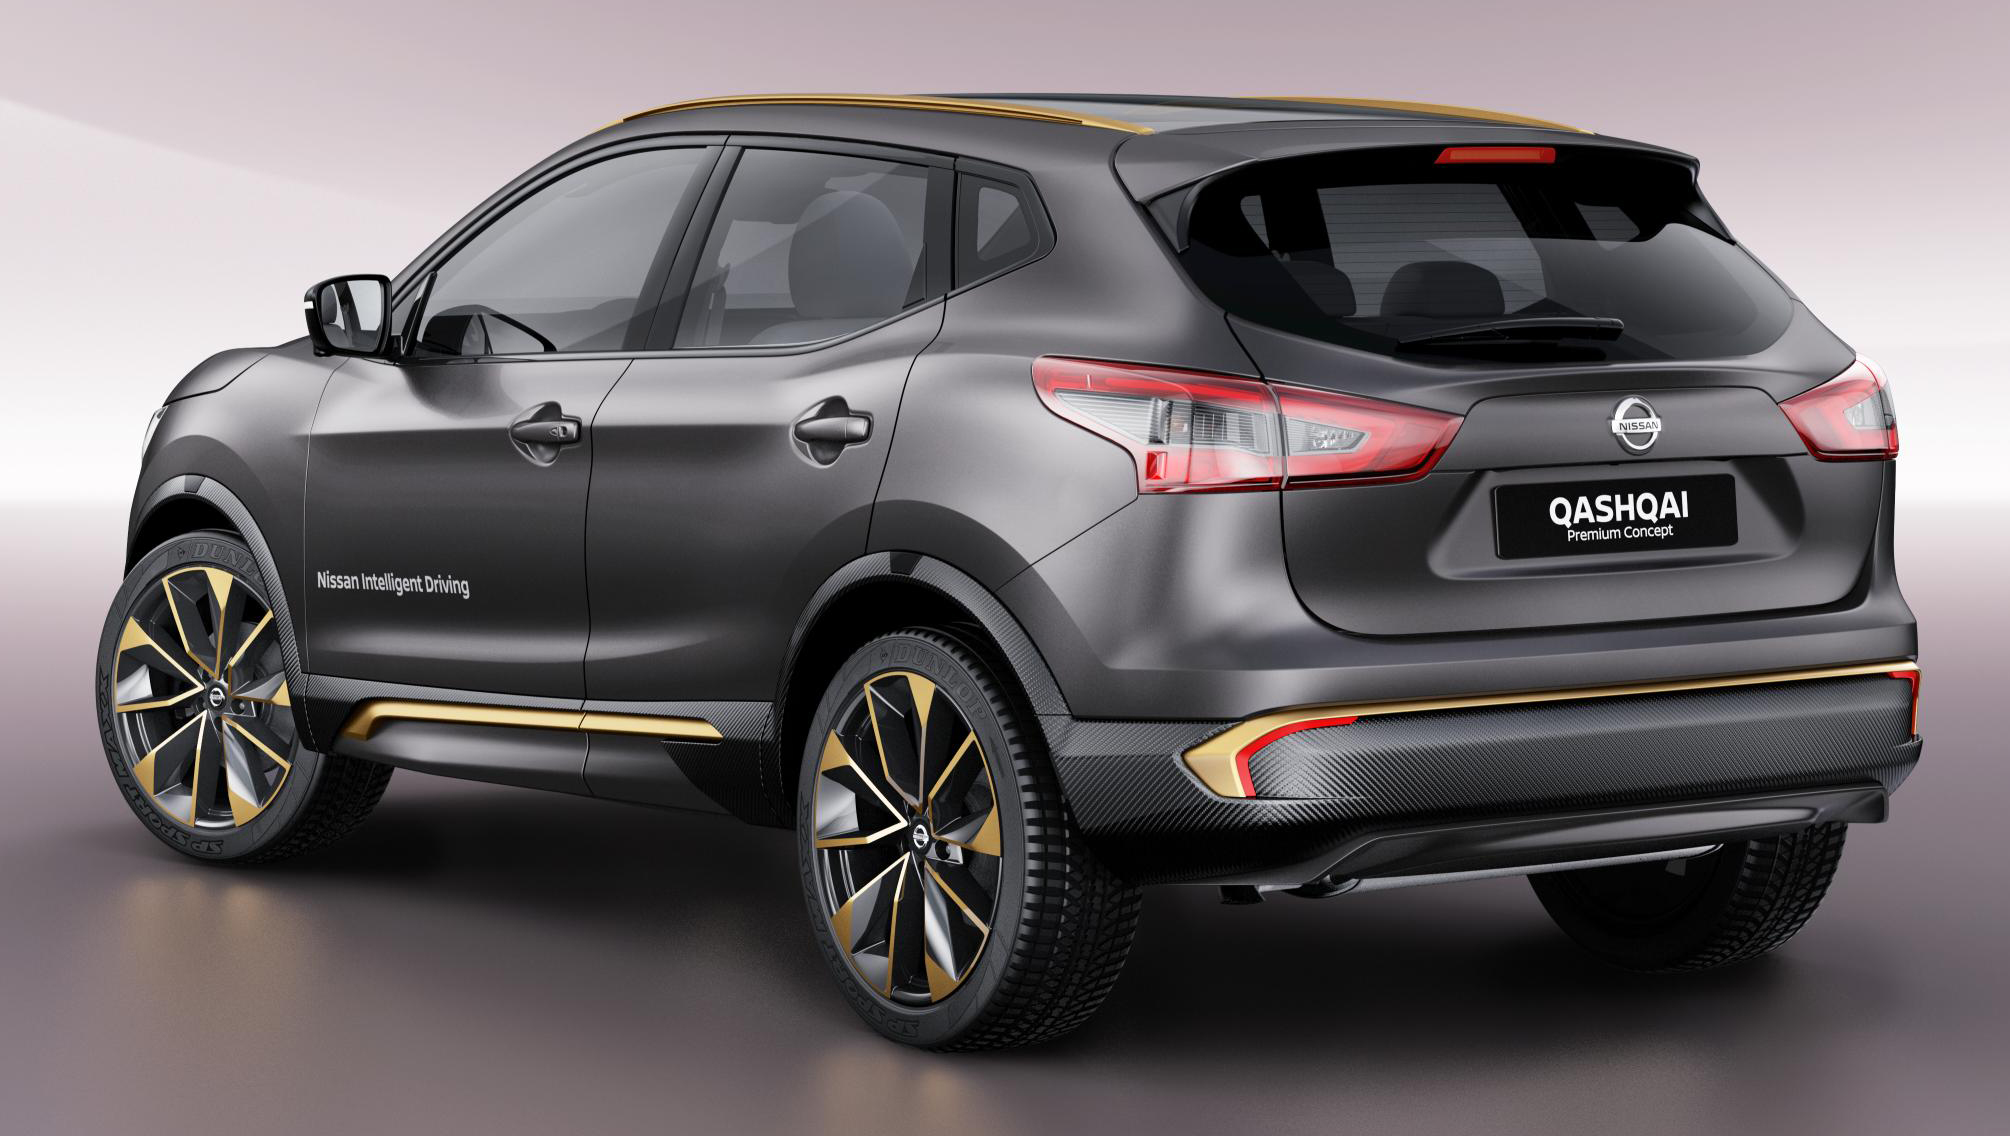 autonomous nissan qashqai piloted drive suv to be launched in europe in 2017 road demo this. Black Bedroom Furniture Sets. Home Design Ideas